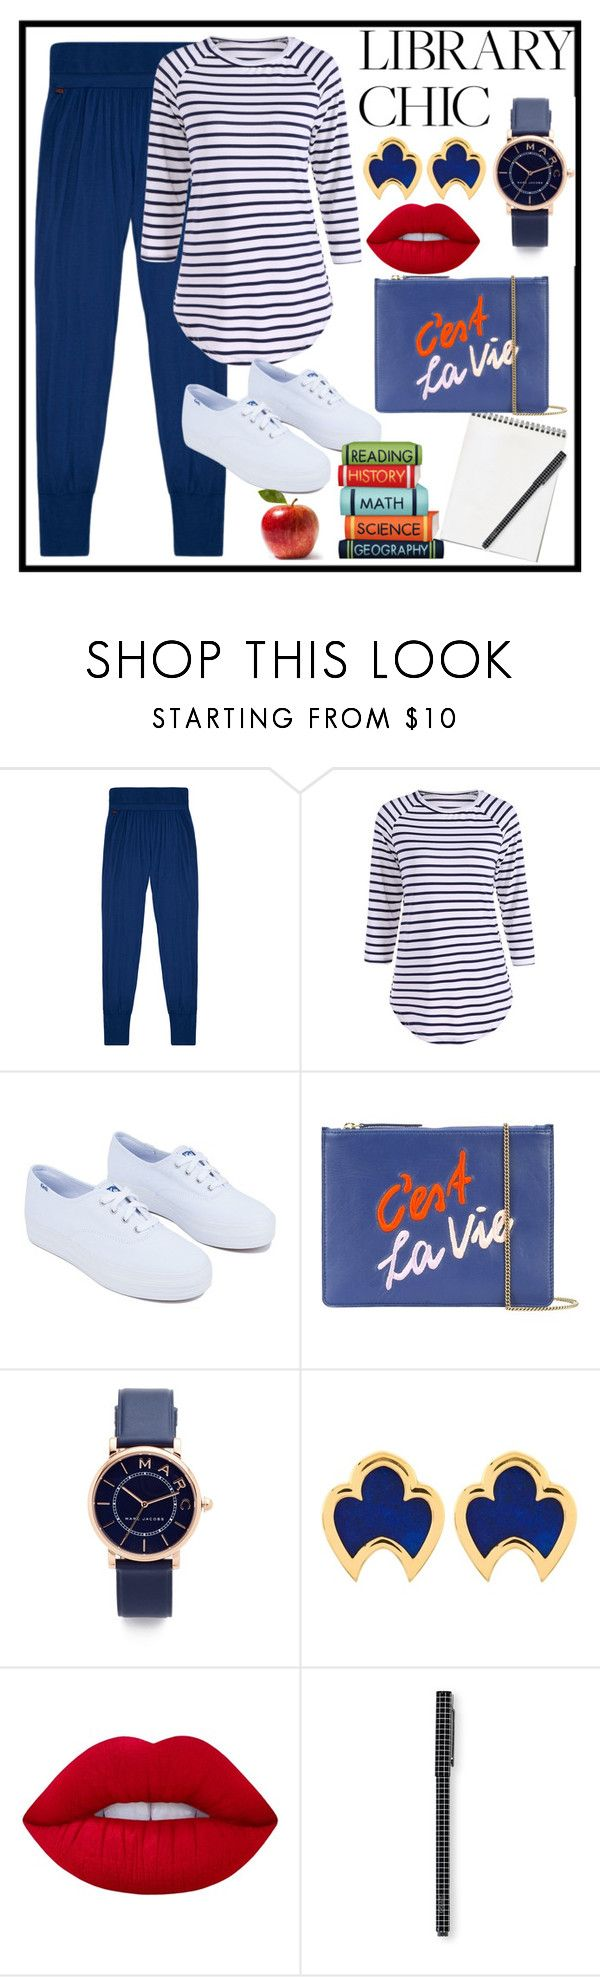 """""""Work Hard Play Hard: Finals Season"""" by terryandjim ❤ liked on Polyvore featuring Derek Rose, Keds, Lizzie Fortunato, Marc Jacobs, Château Euphorie, Lime Crime and finals"""